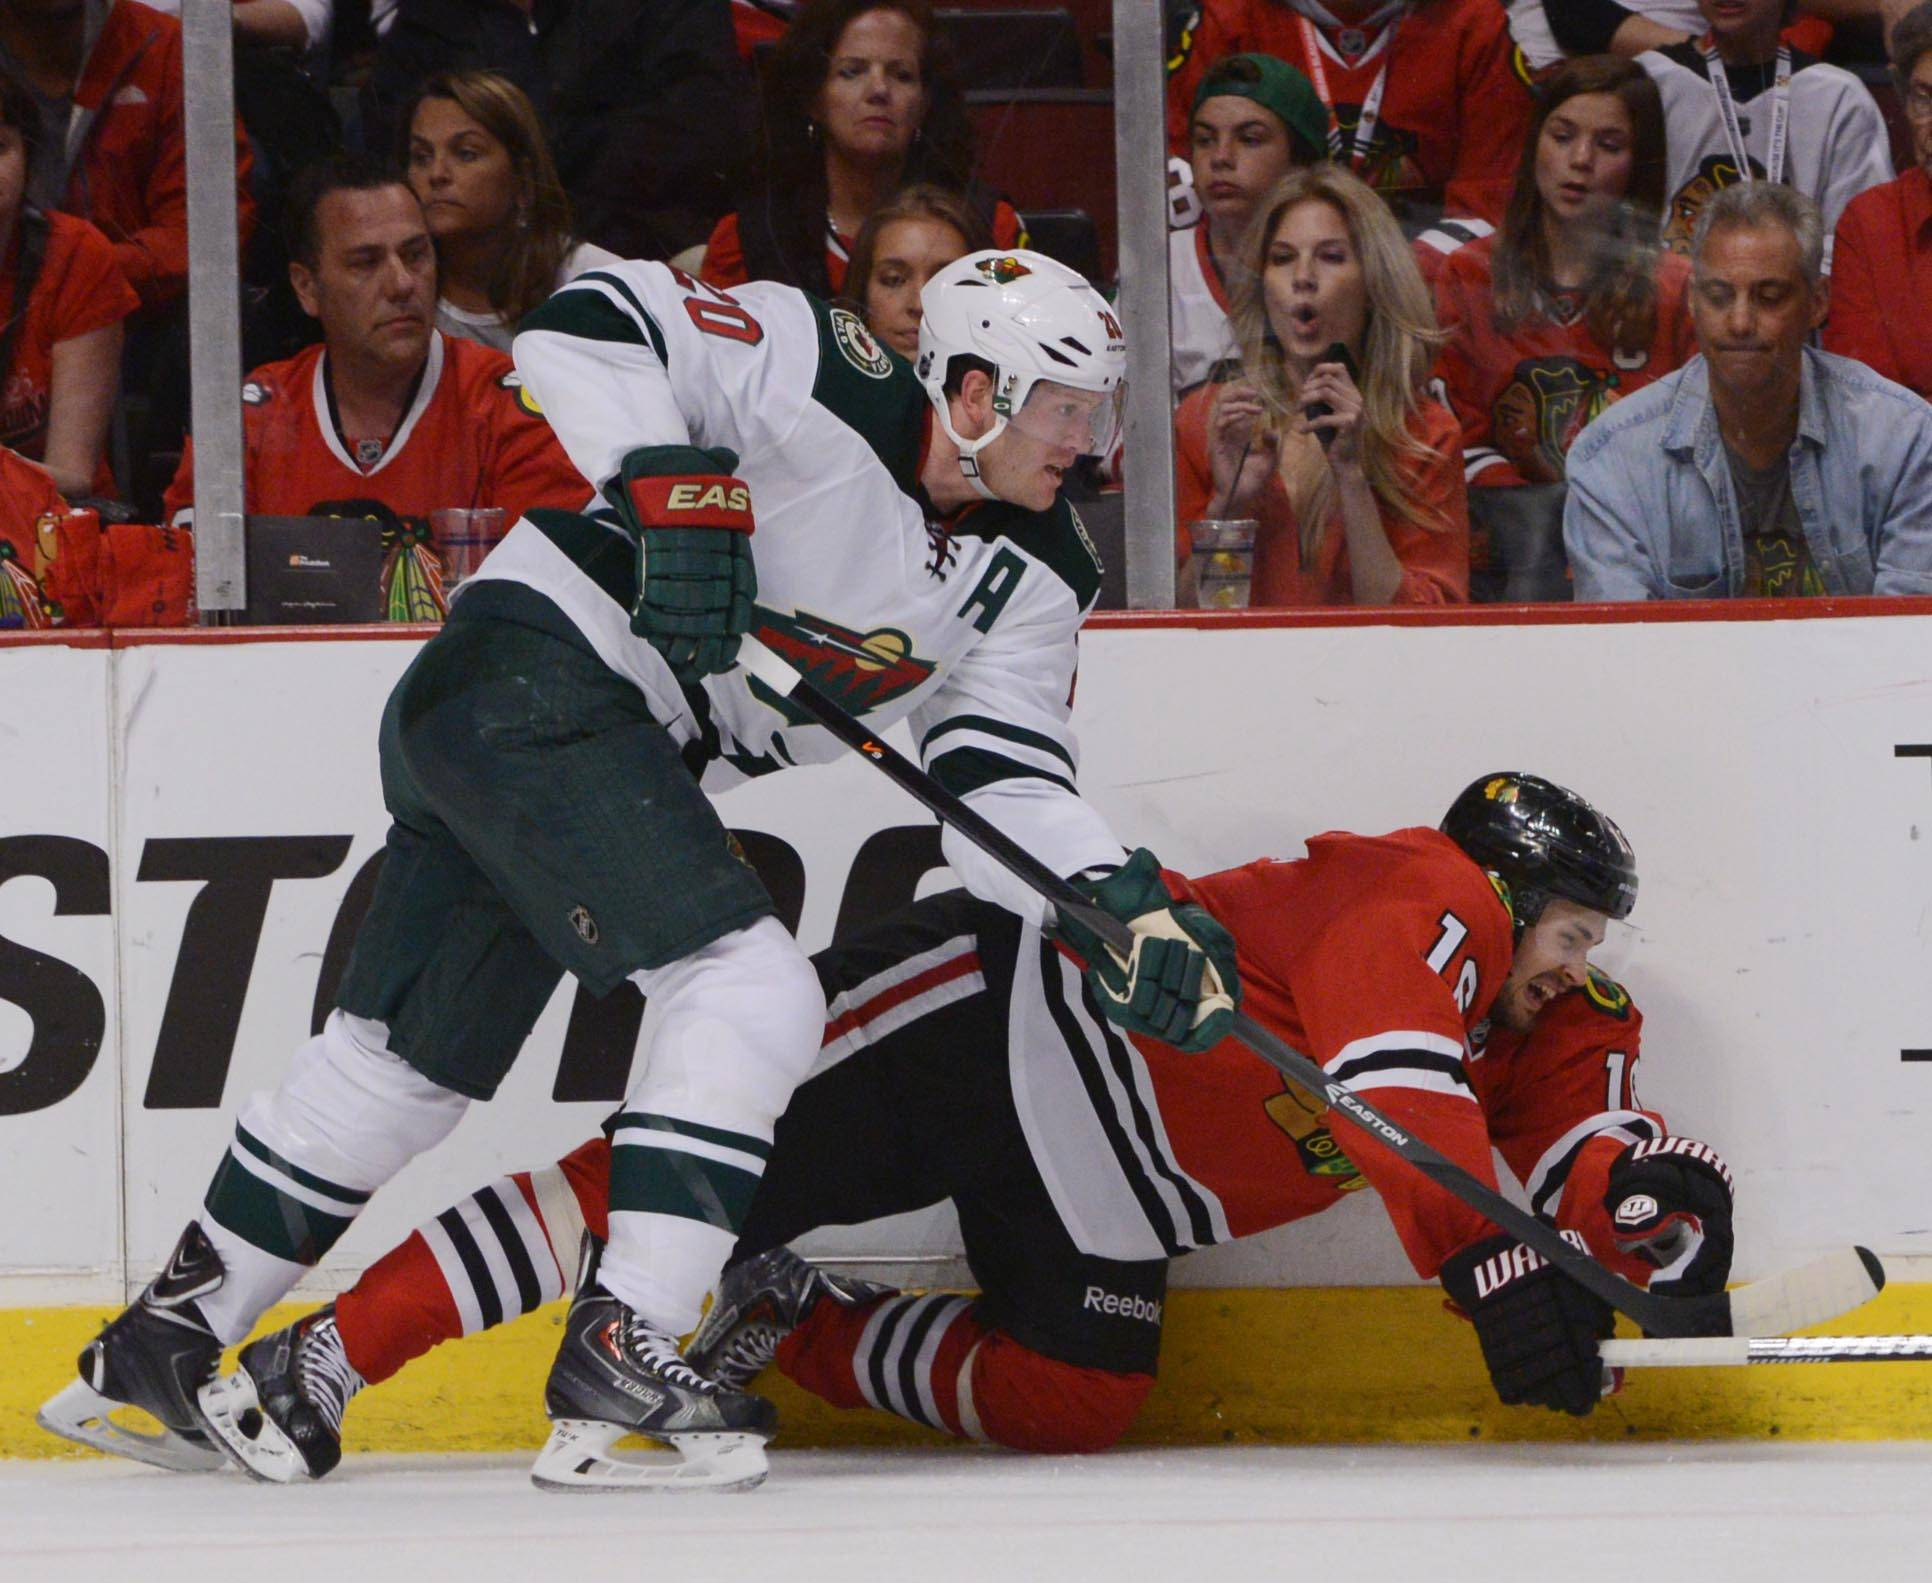 Chicago Blackhawks center Marcus Kruger gets knocked to the ice by Minnesota Wild defenseman Ryan Suter.